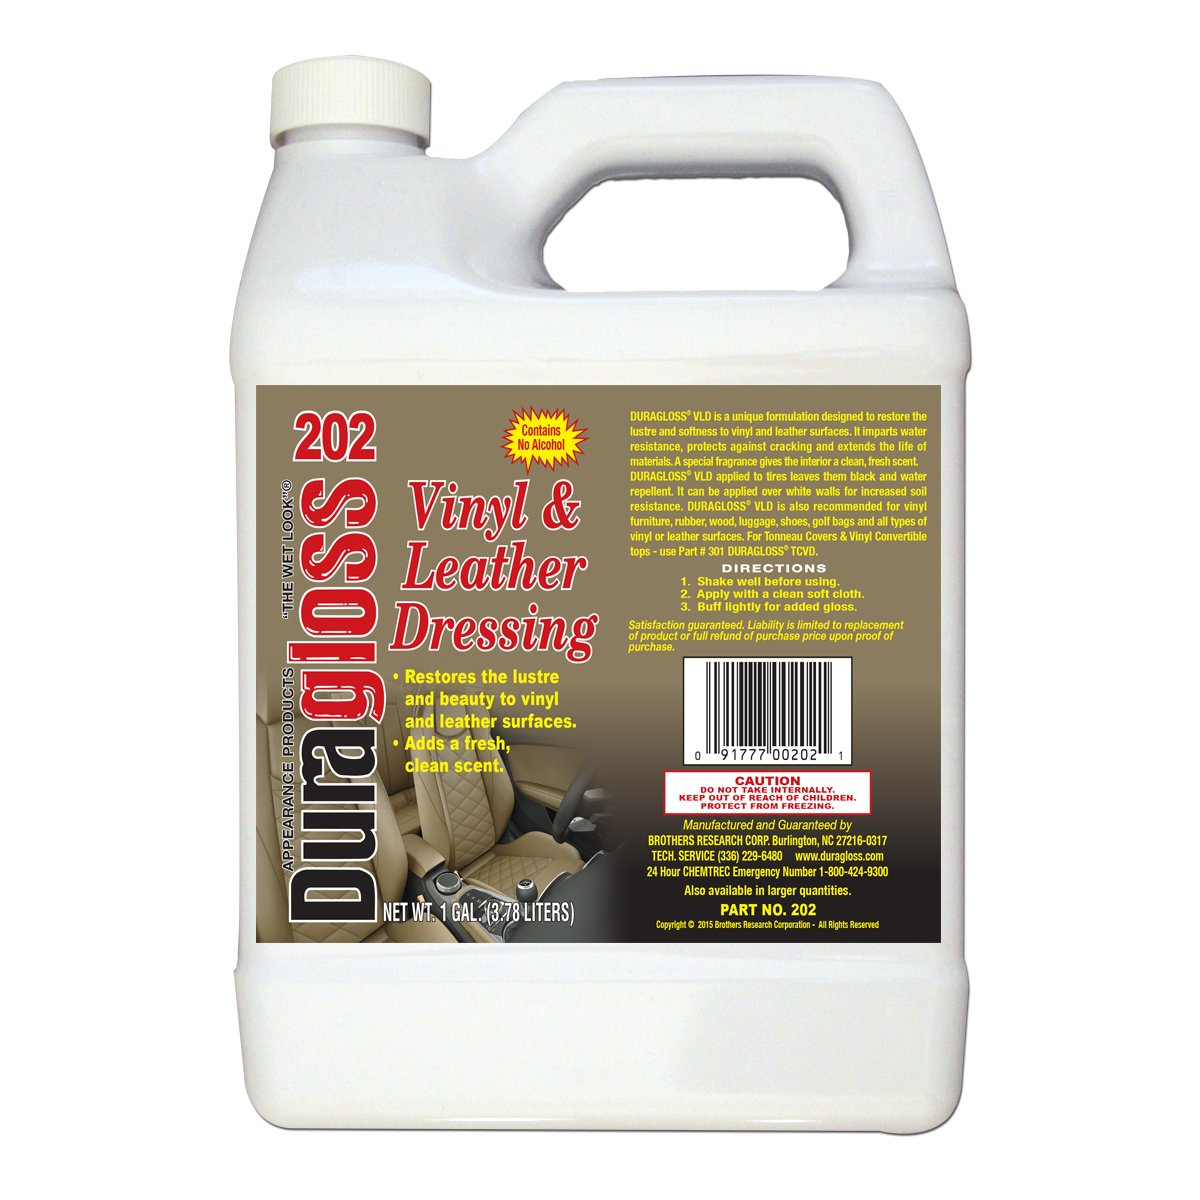 Duragloss 202 Vinyl and Leather Dressing - 1 Gallon